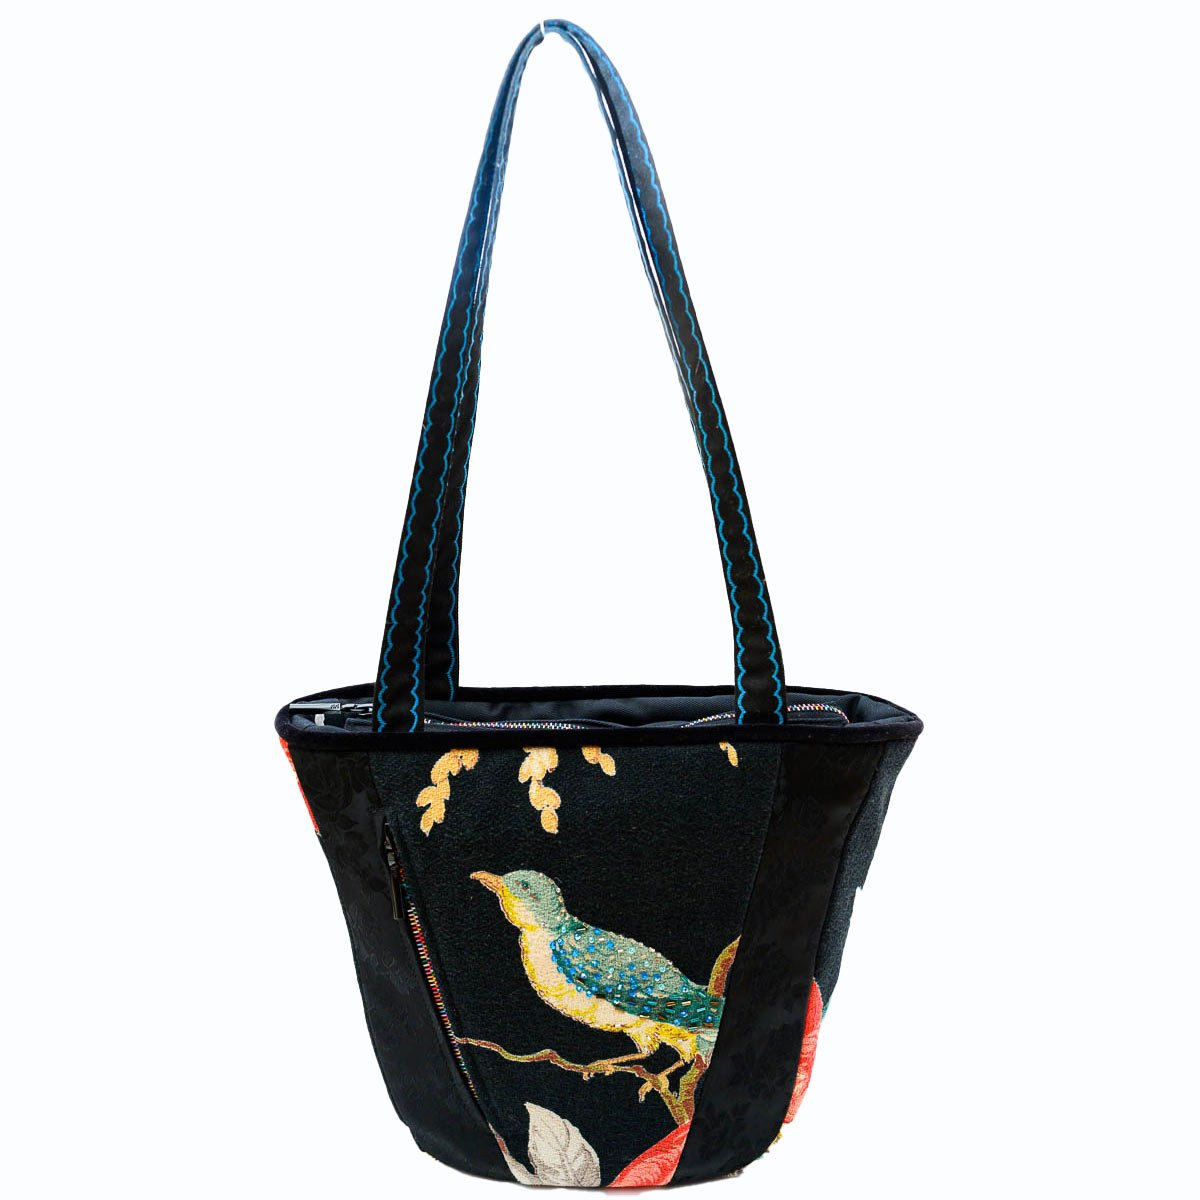 tiki bag bird motif on black